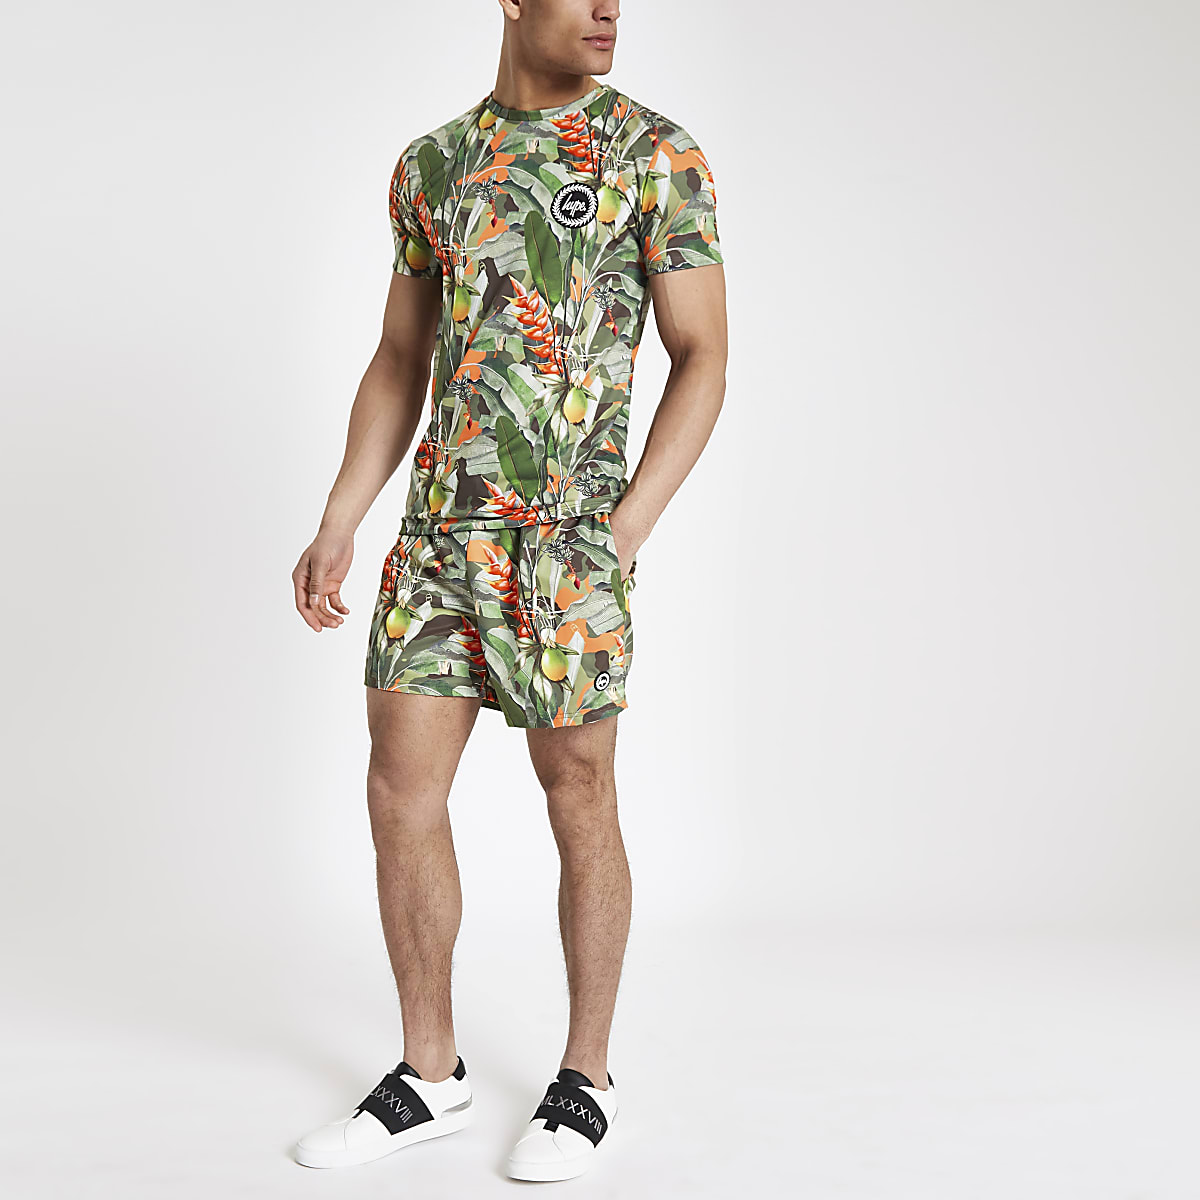 Hype green tropical print T-shirt